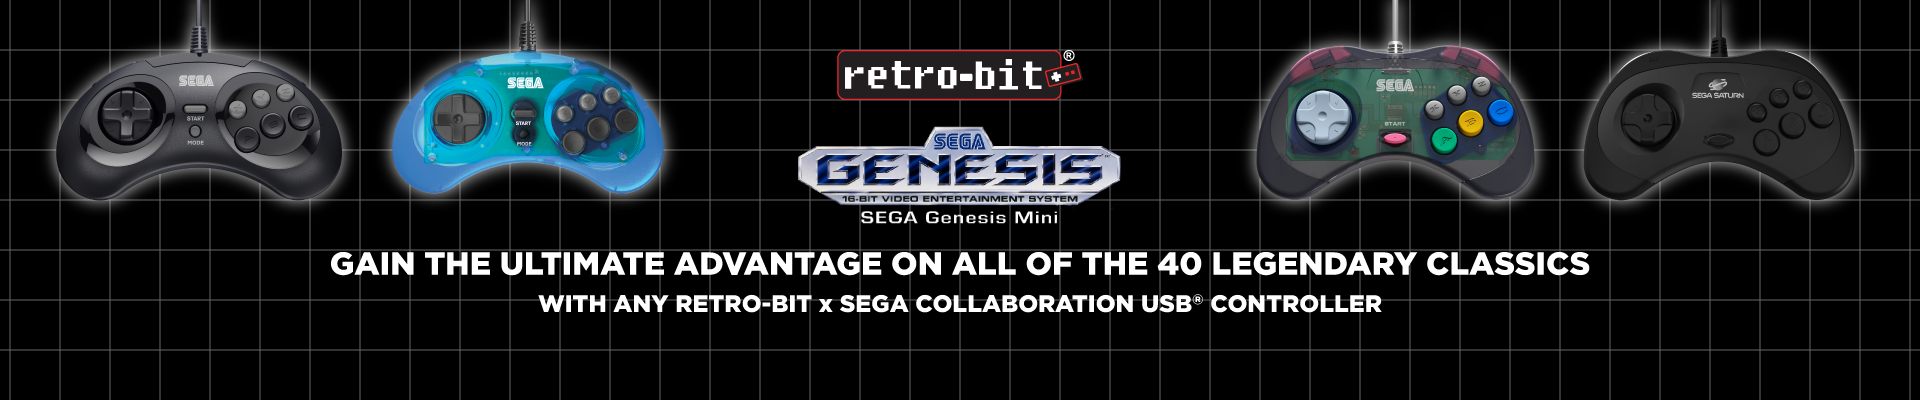 SEGA Collaboration - Mini